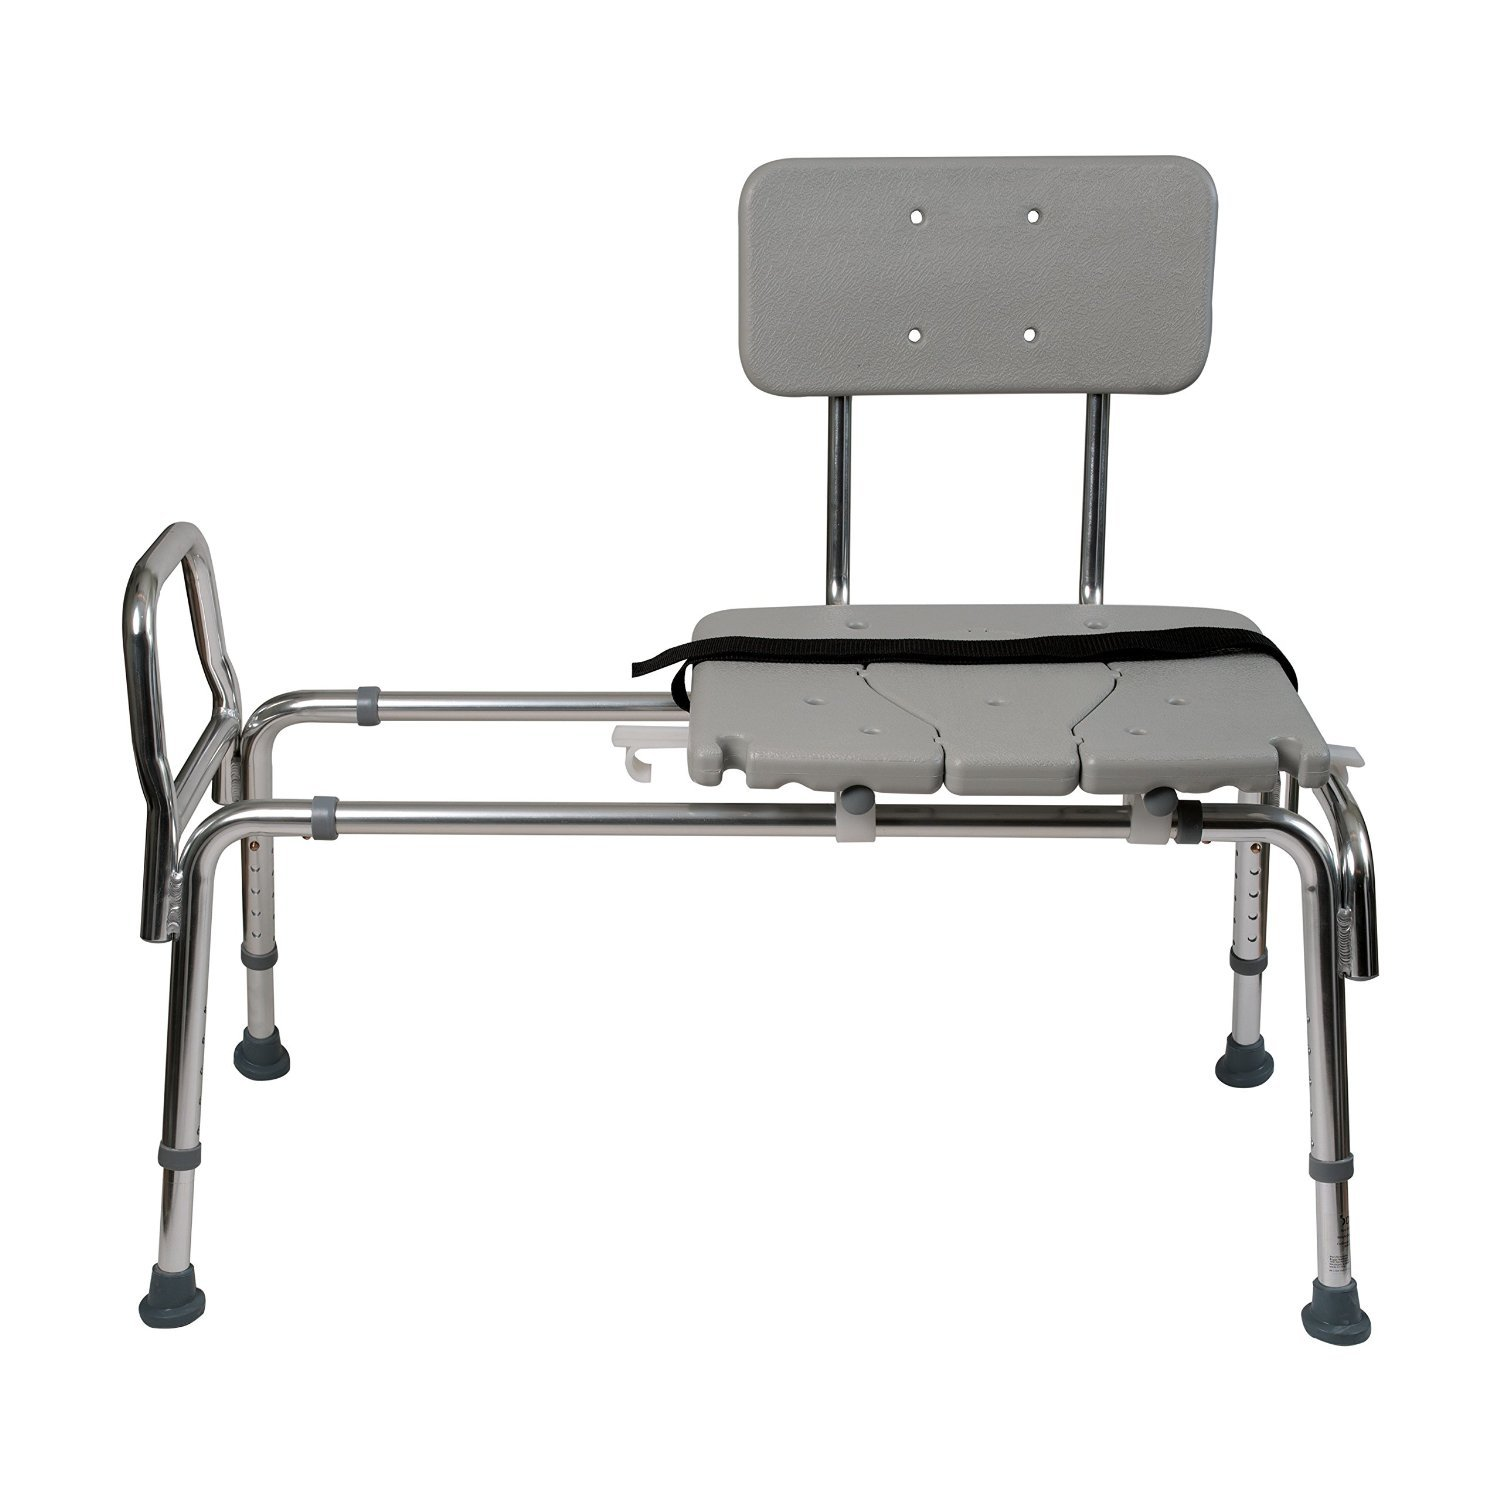 Amazon.com: Duro-Med Heavy-Duty Sliding Transfer Bench Shower ...